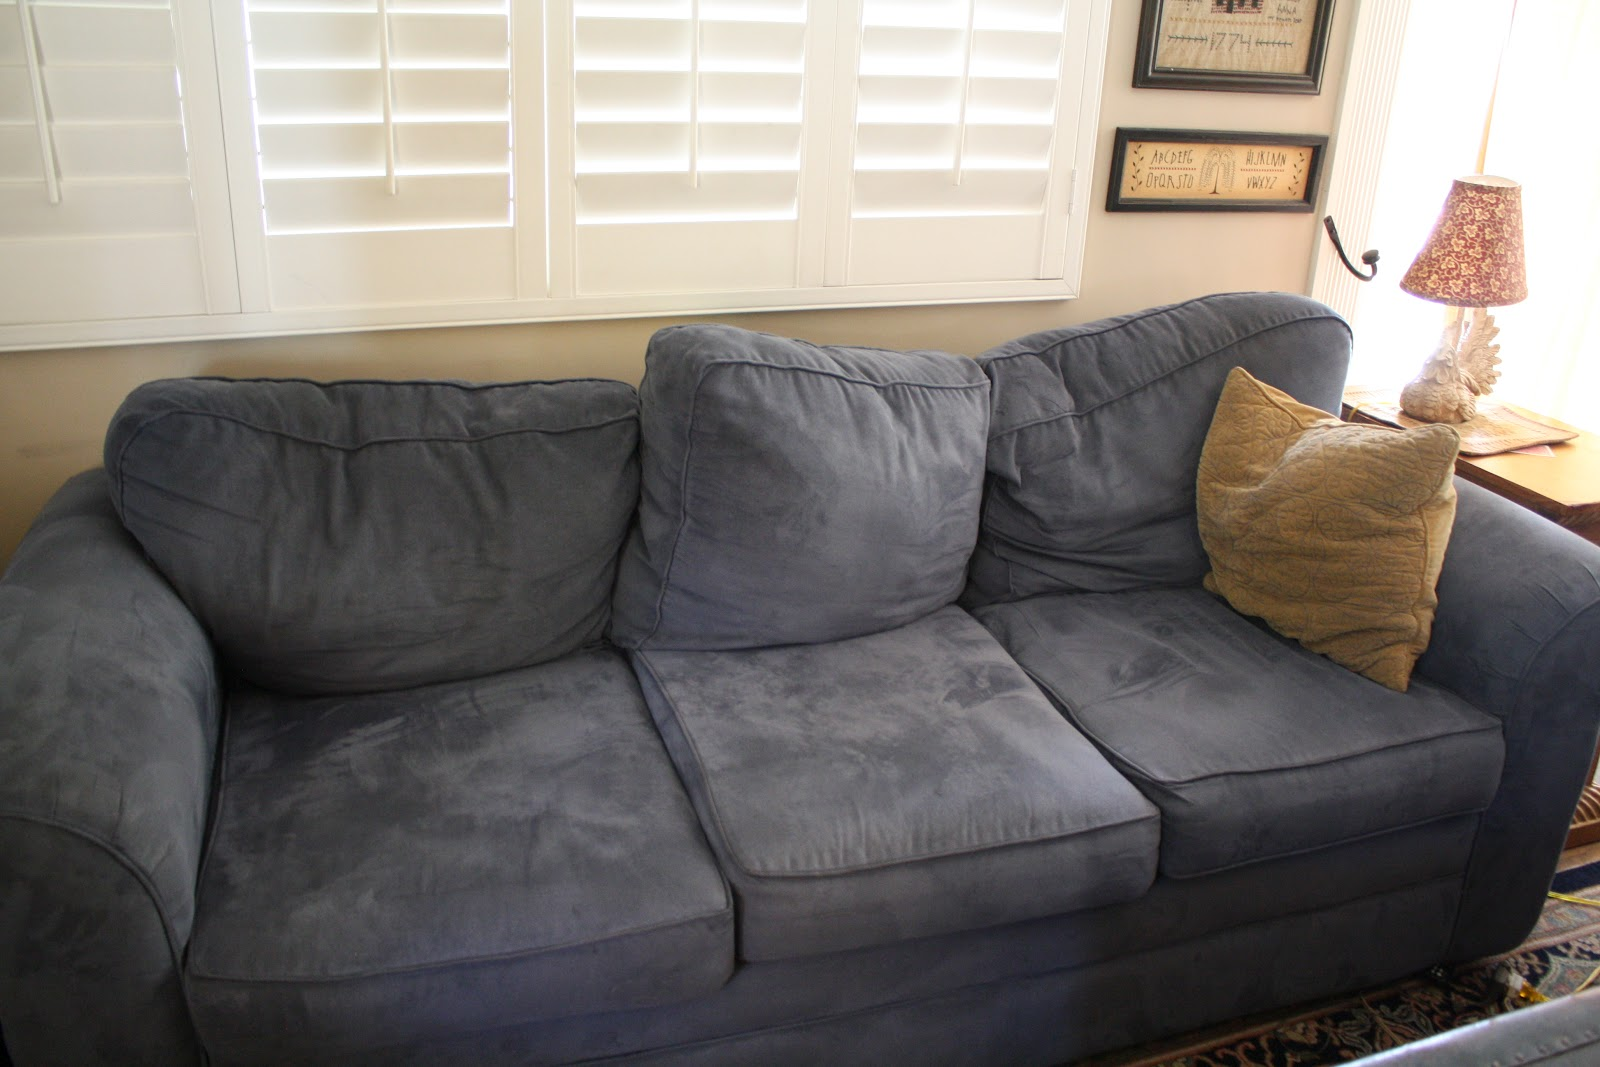 Refilling Sofa Cushions Gray Leather Sets Sunny Simple Life How To Refill Couch Cheaply